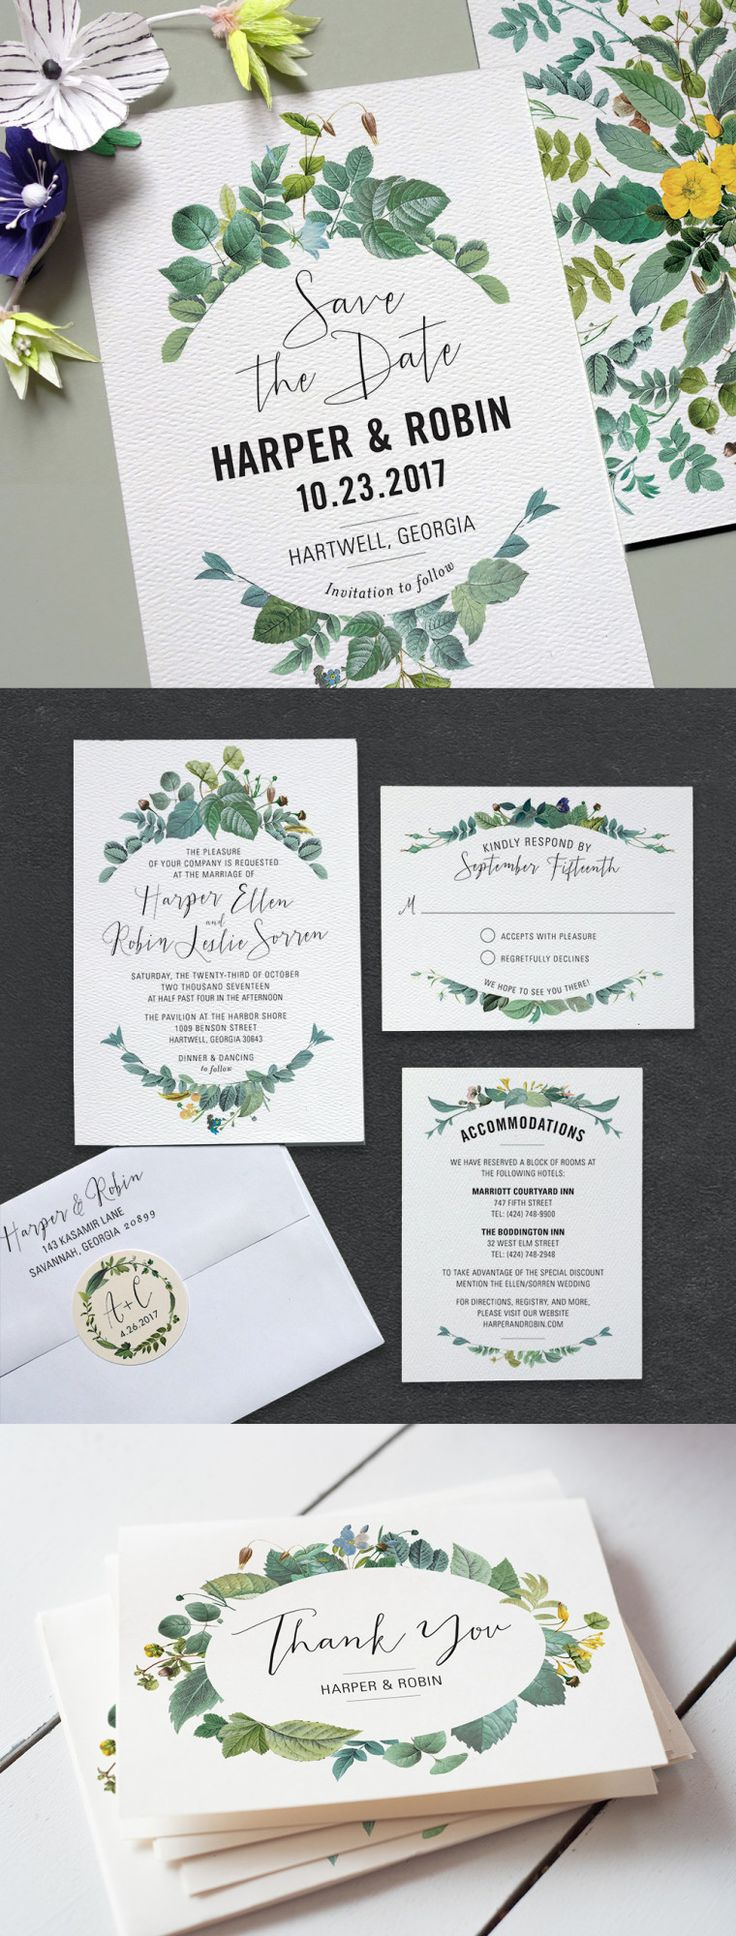 Invitaciones de boda / Wedding invites / #ideas #boda #invitaciones #invites #invitations